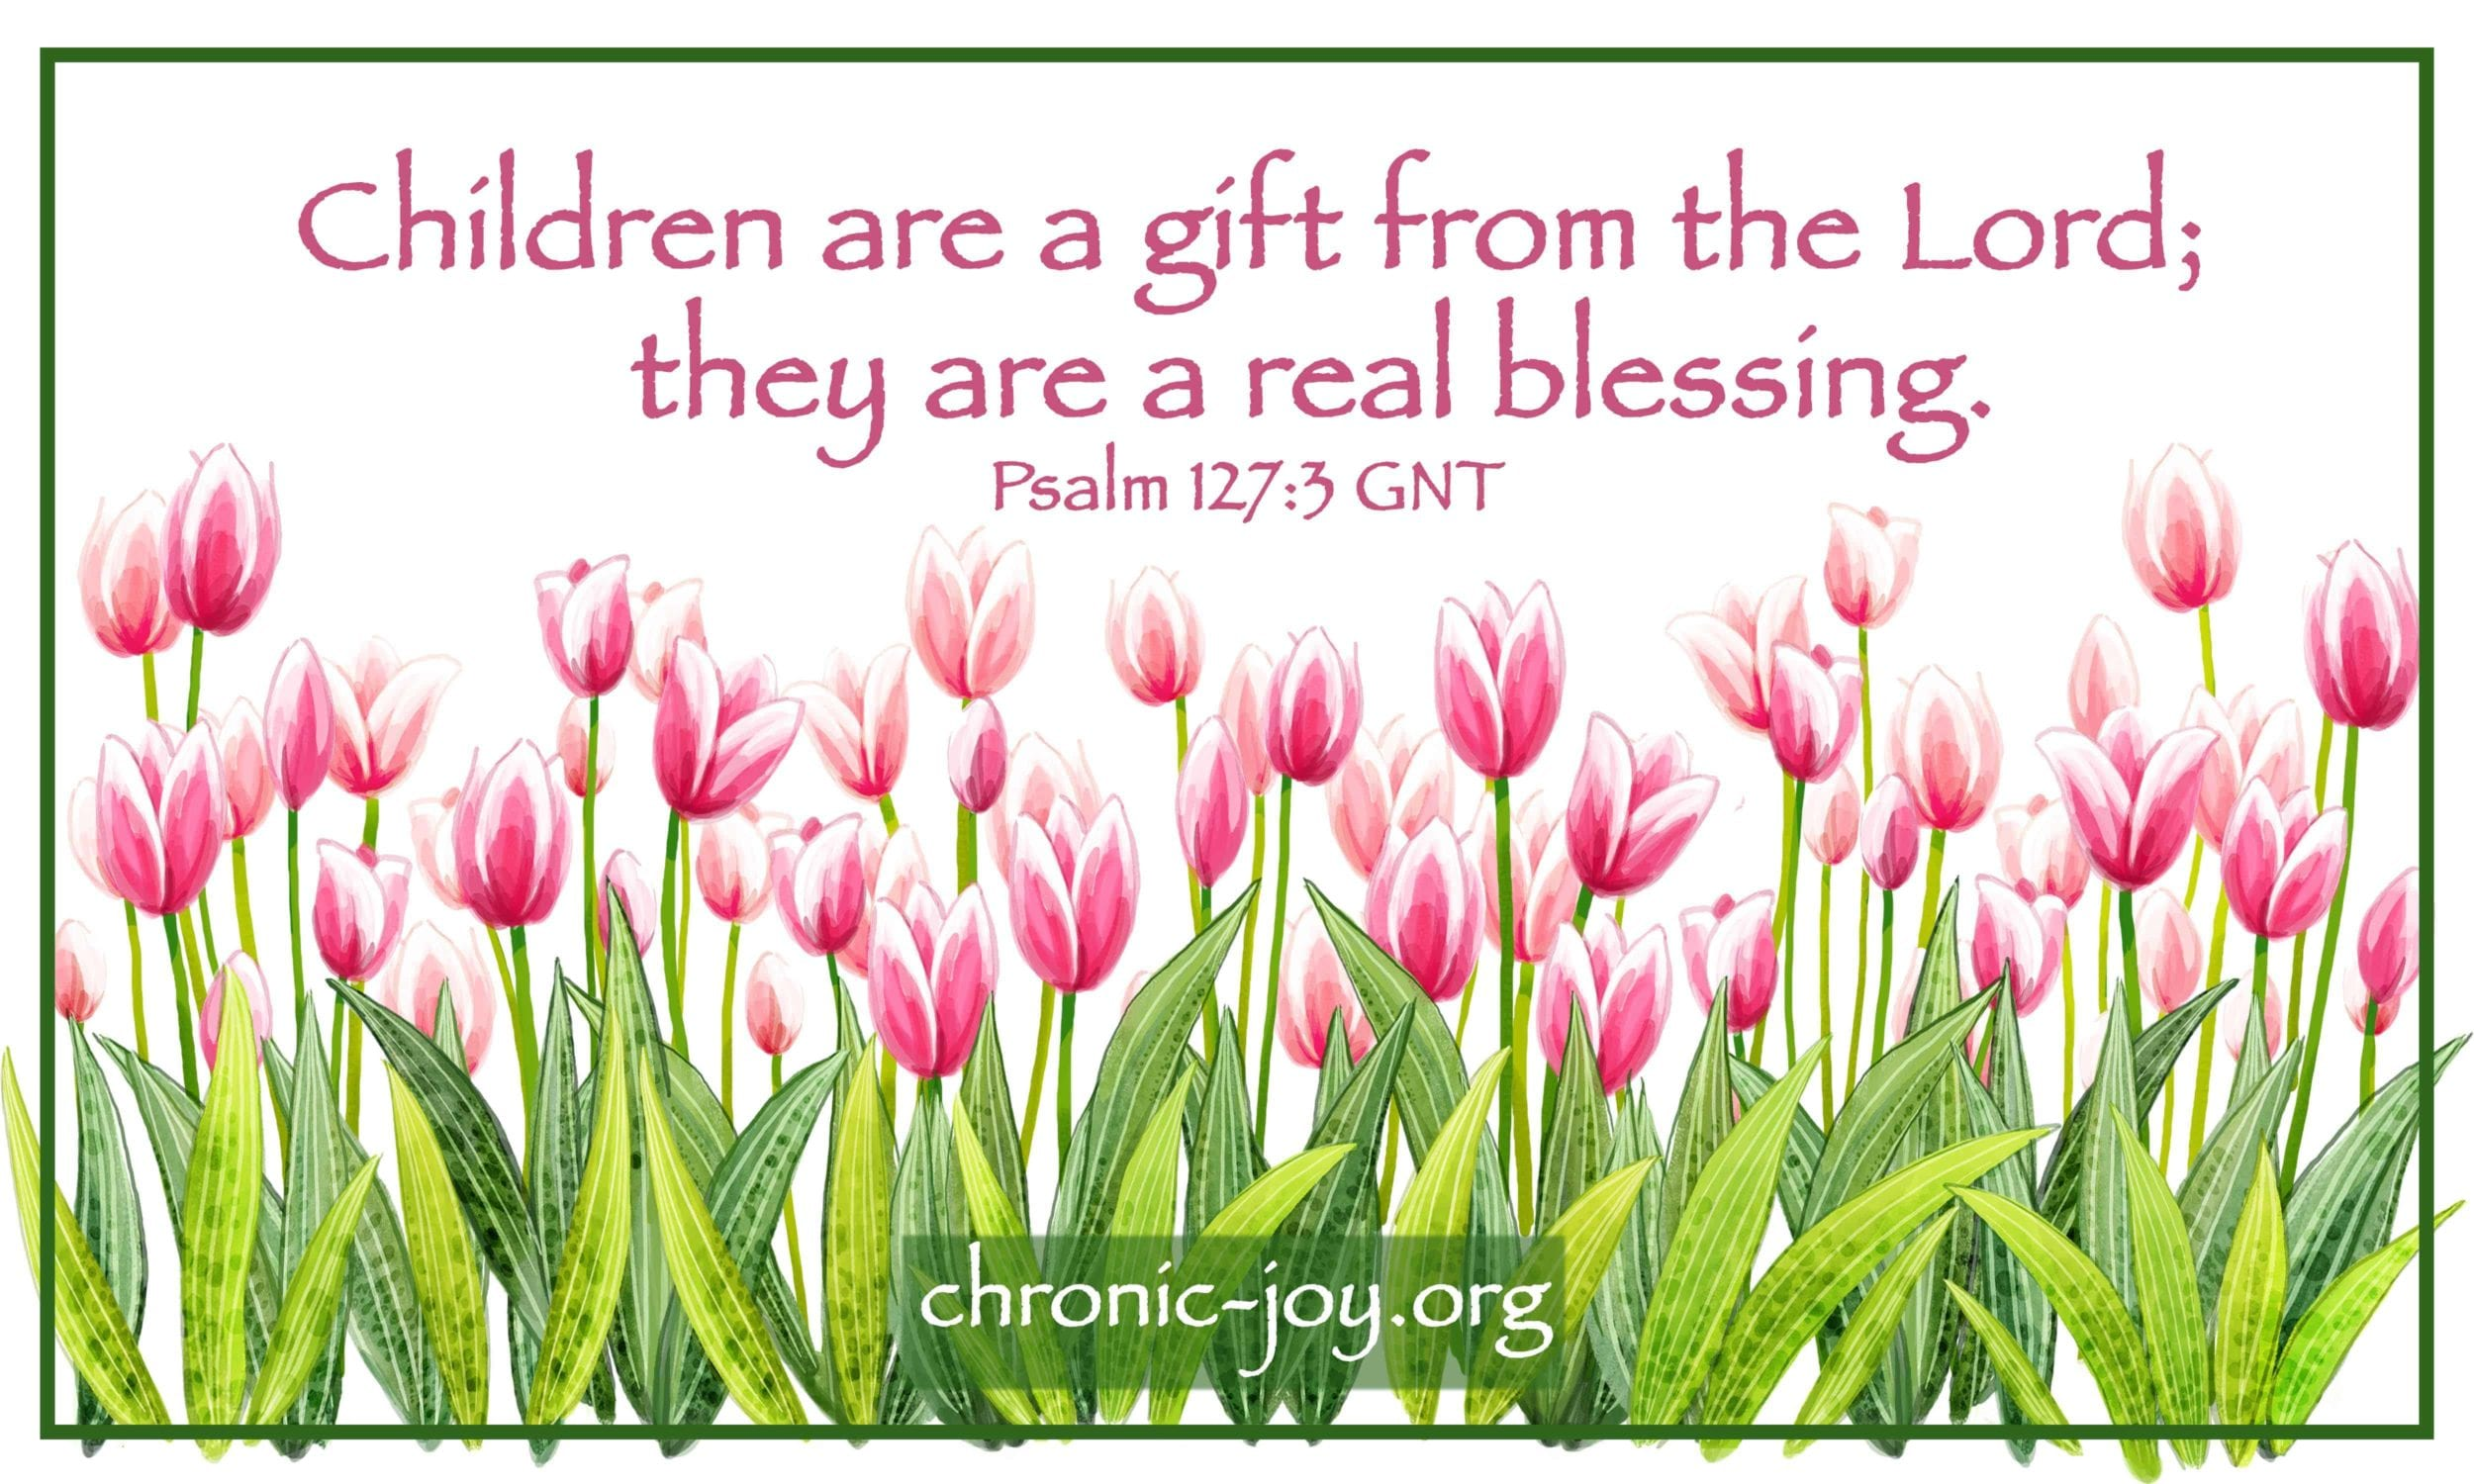 Children are a gift from God.